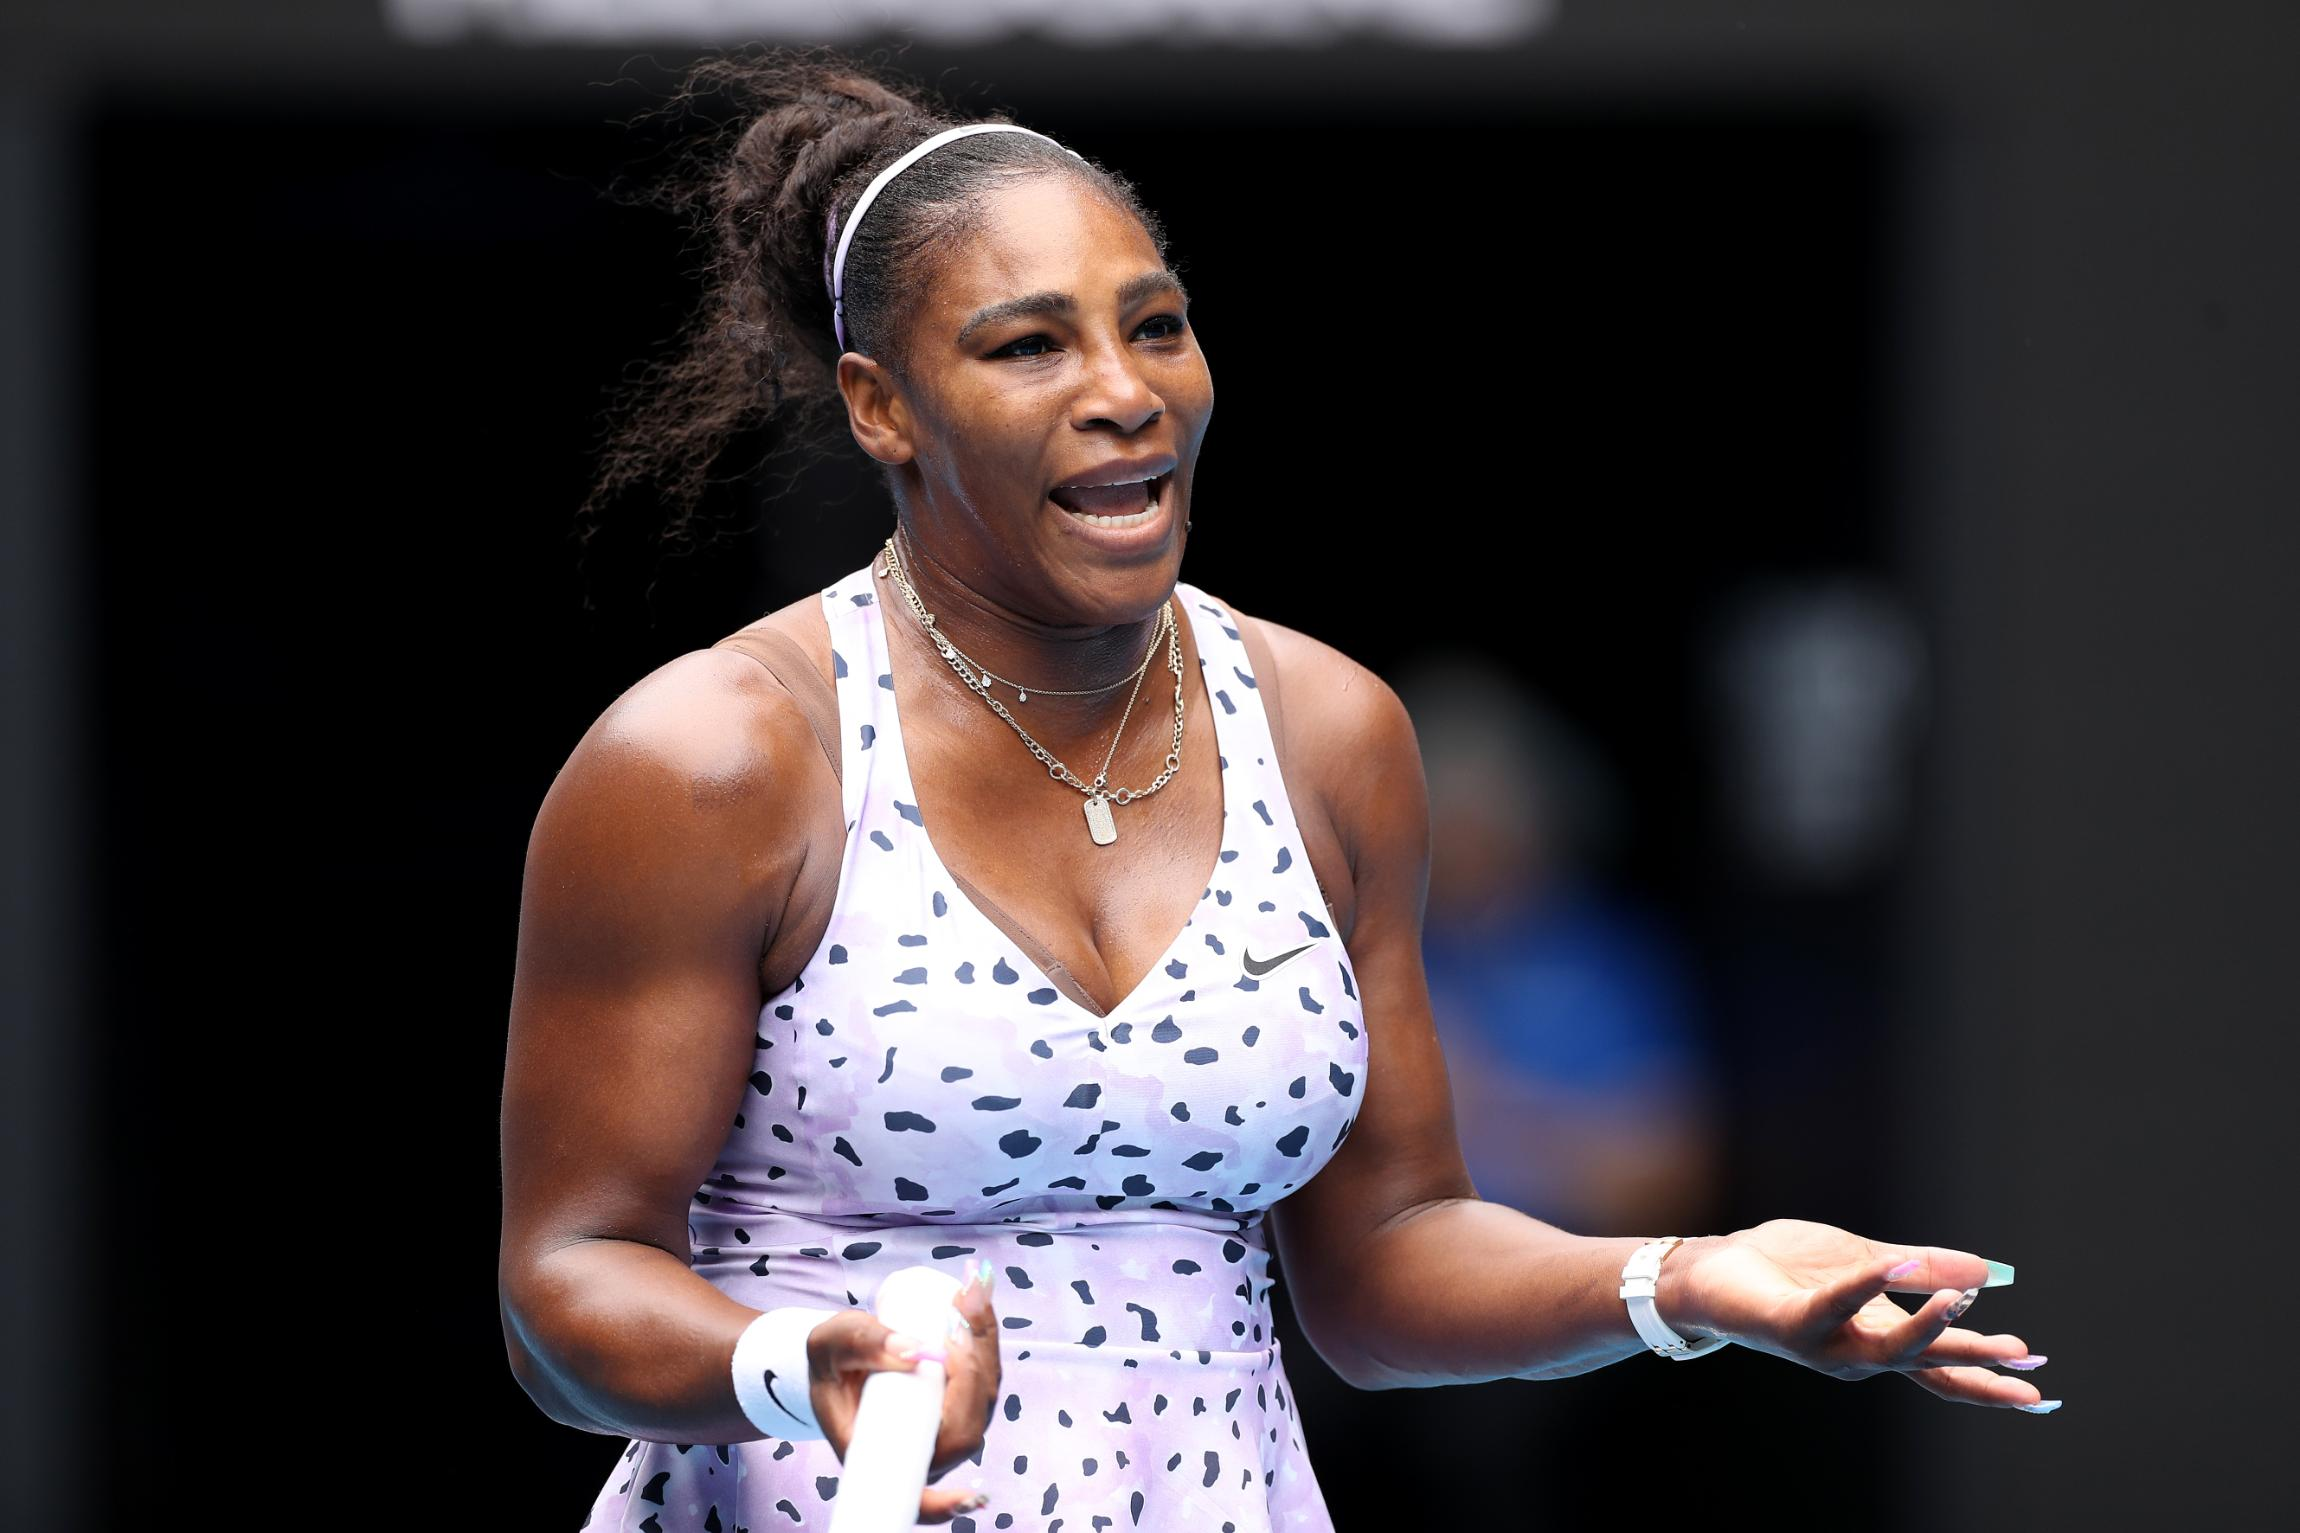 Serena Williams quizzed on Meghan Markle, credits reporter with 'good try'